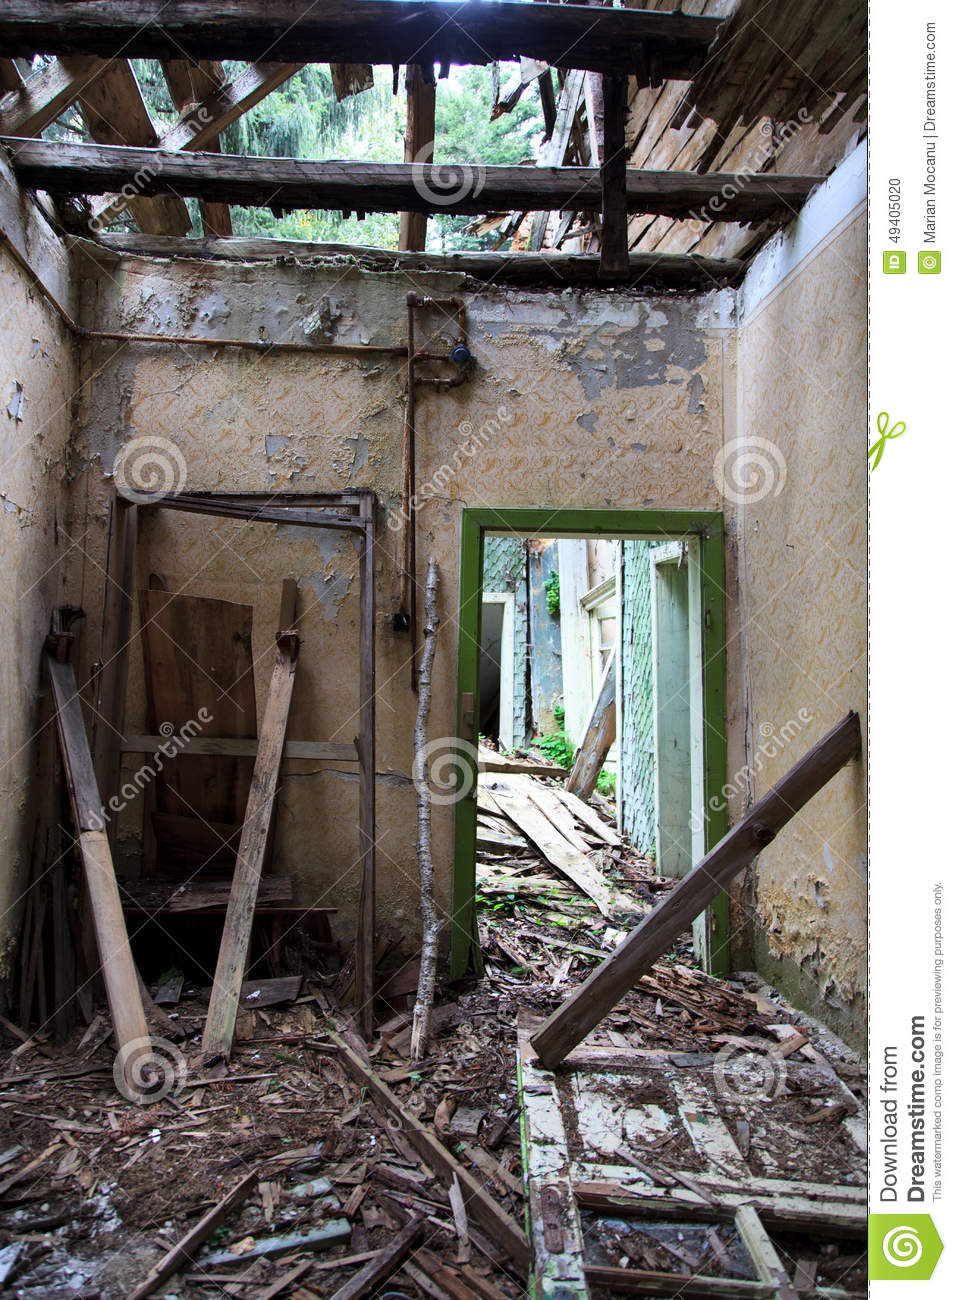 Download Demoliertes Haus stockfoto. Bild von ruine, wand, vermindert - 49405020